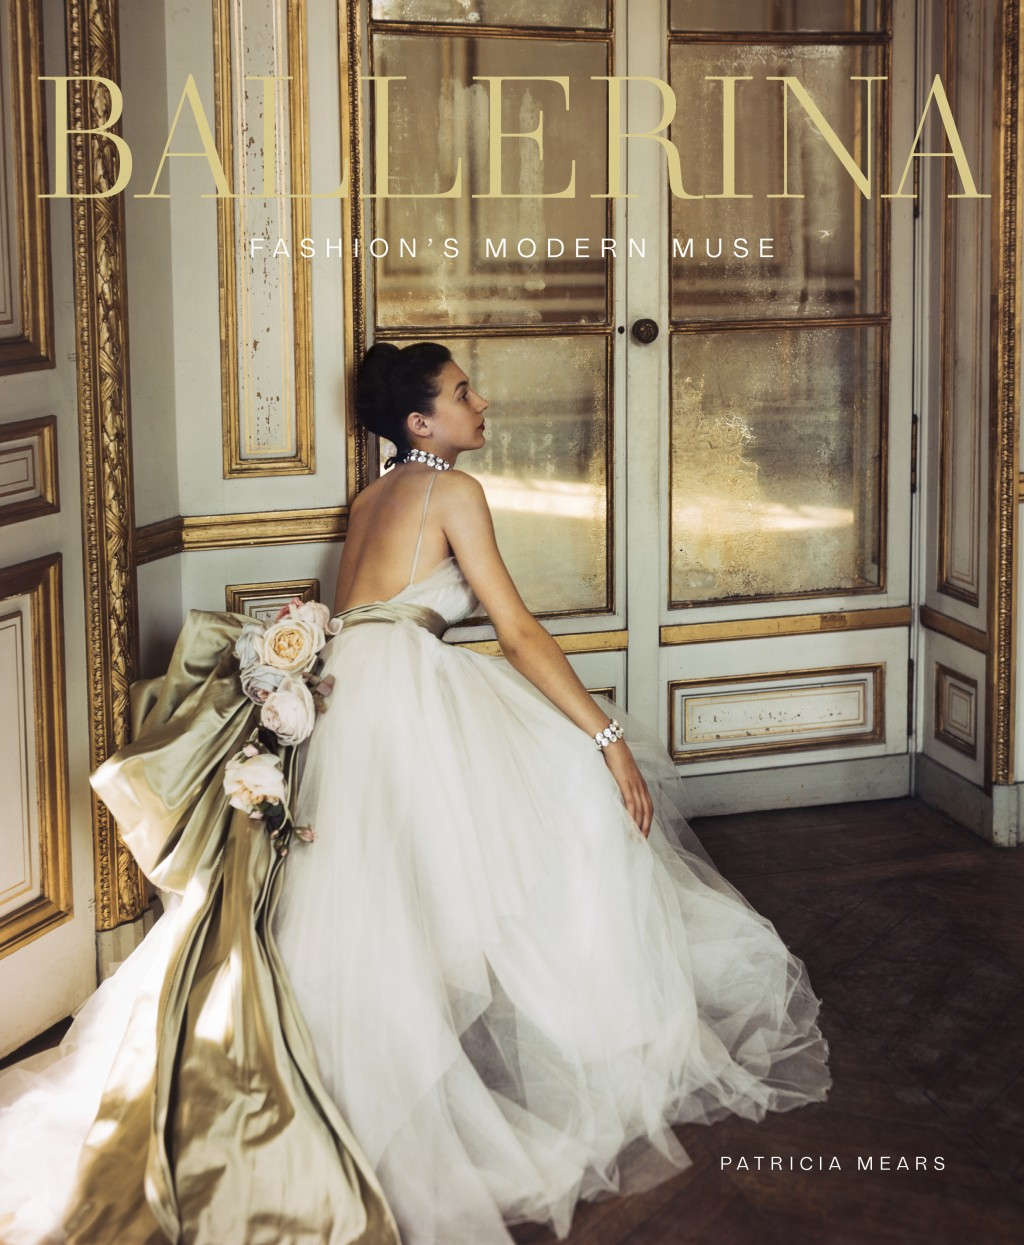 "This cover image released by Vendome shows ""Ballerina: Fashion's Modern Muse,"" by Patricia Mears. (Vendome via AP)"